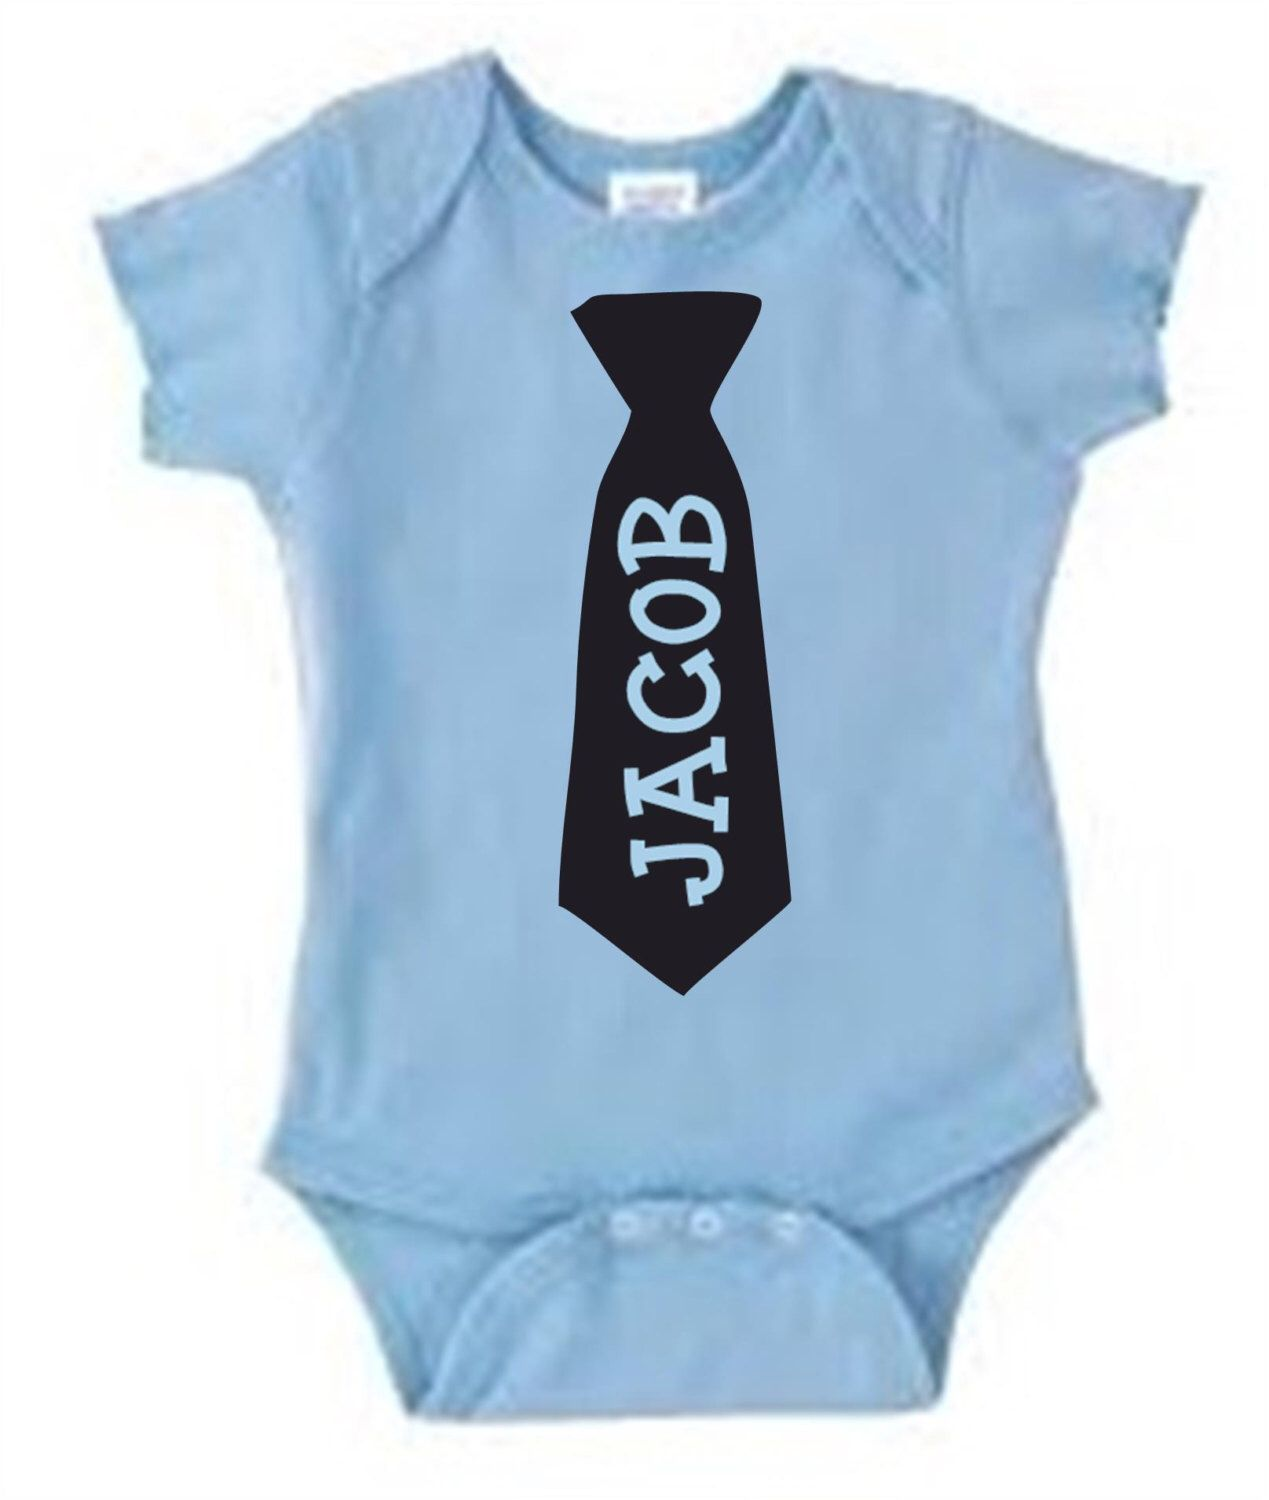 de15a33c488 Personalized baby's name in neck tie baby boy bodysuit / blue with black  design or black